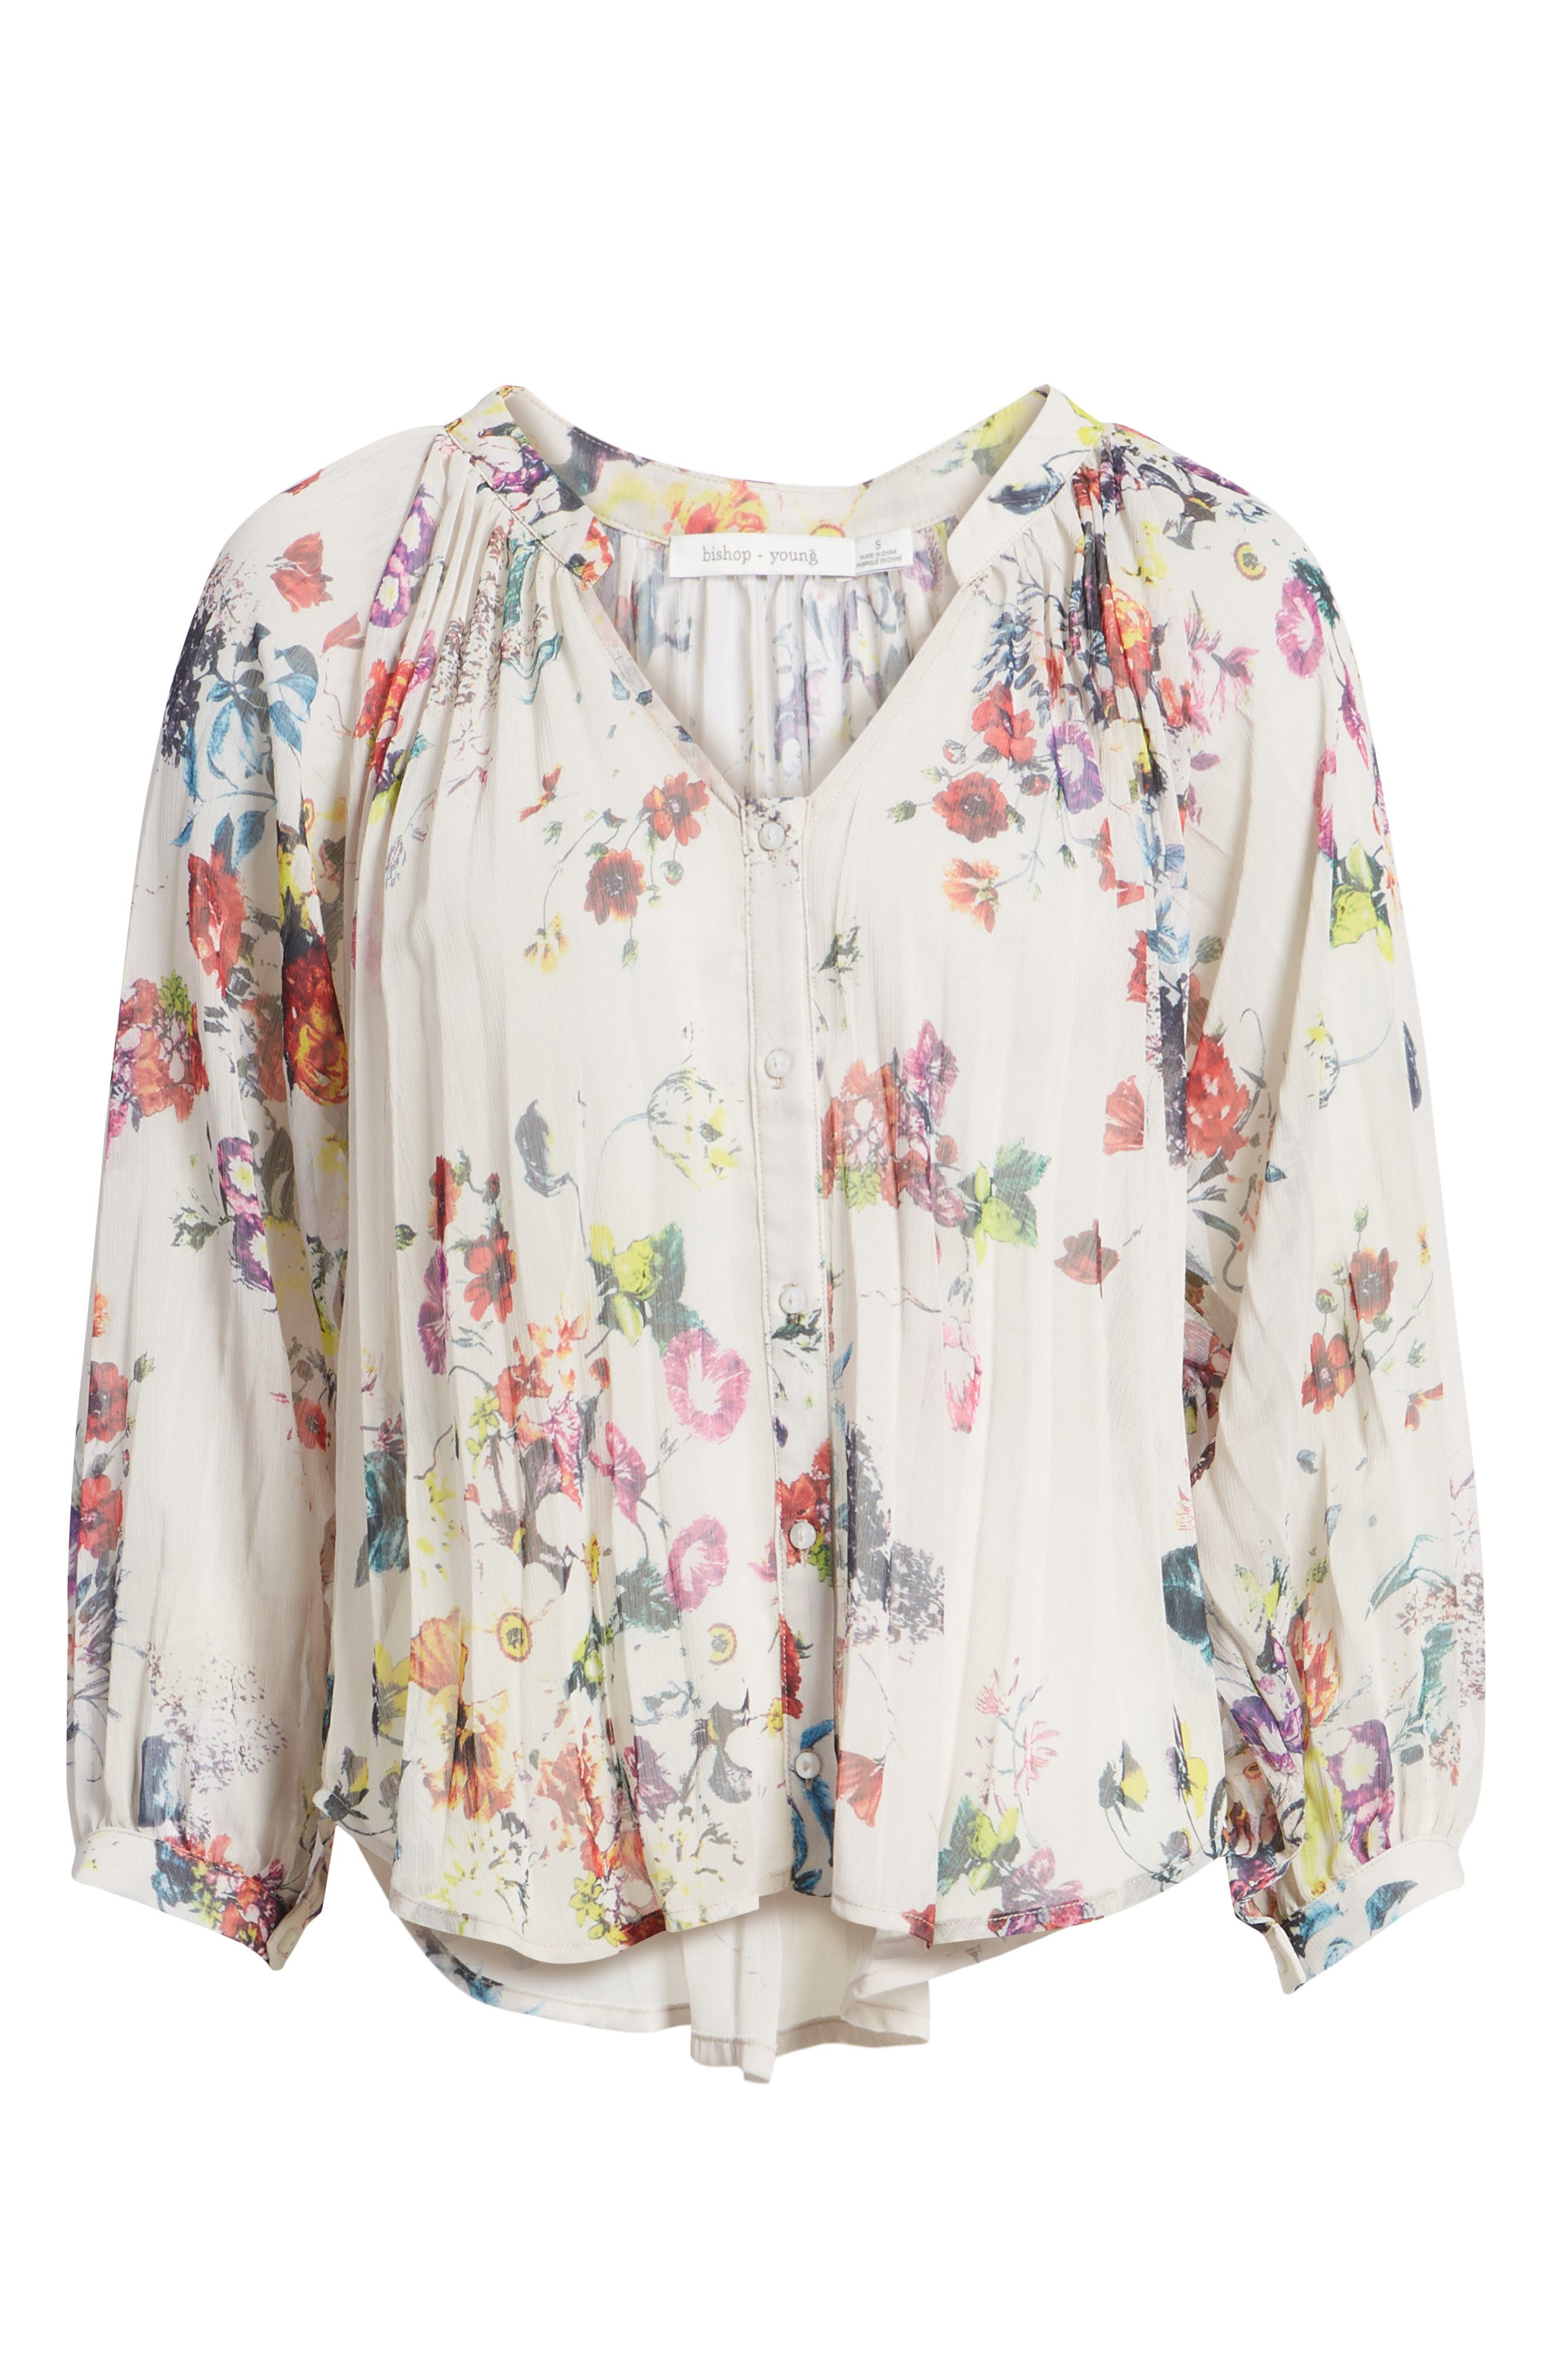 Bishop + Young Floral Pleated Top,                             Alternate thumbnail 7, color,                             Romance Print